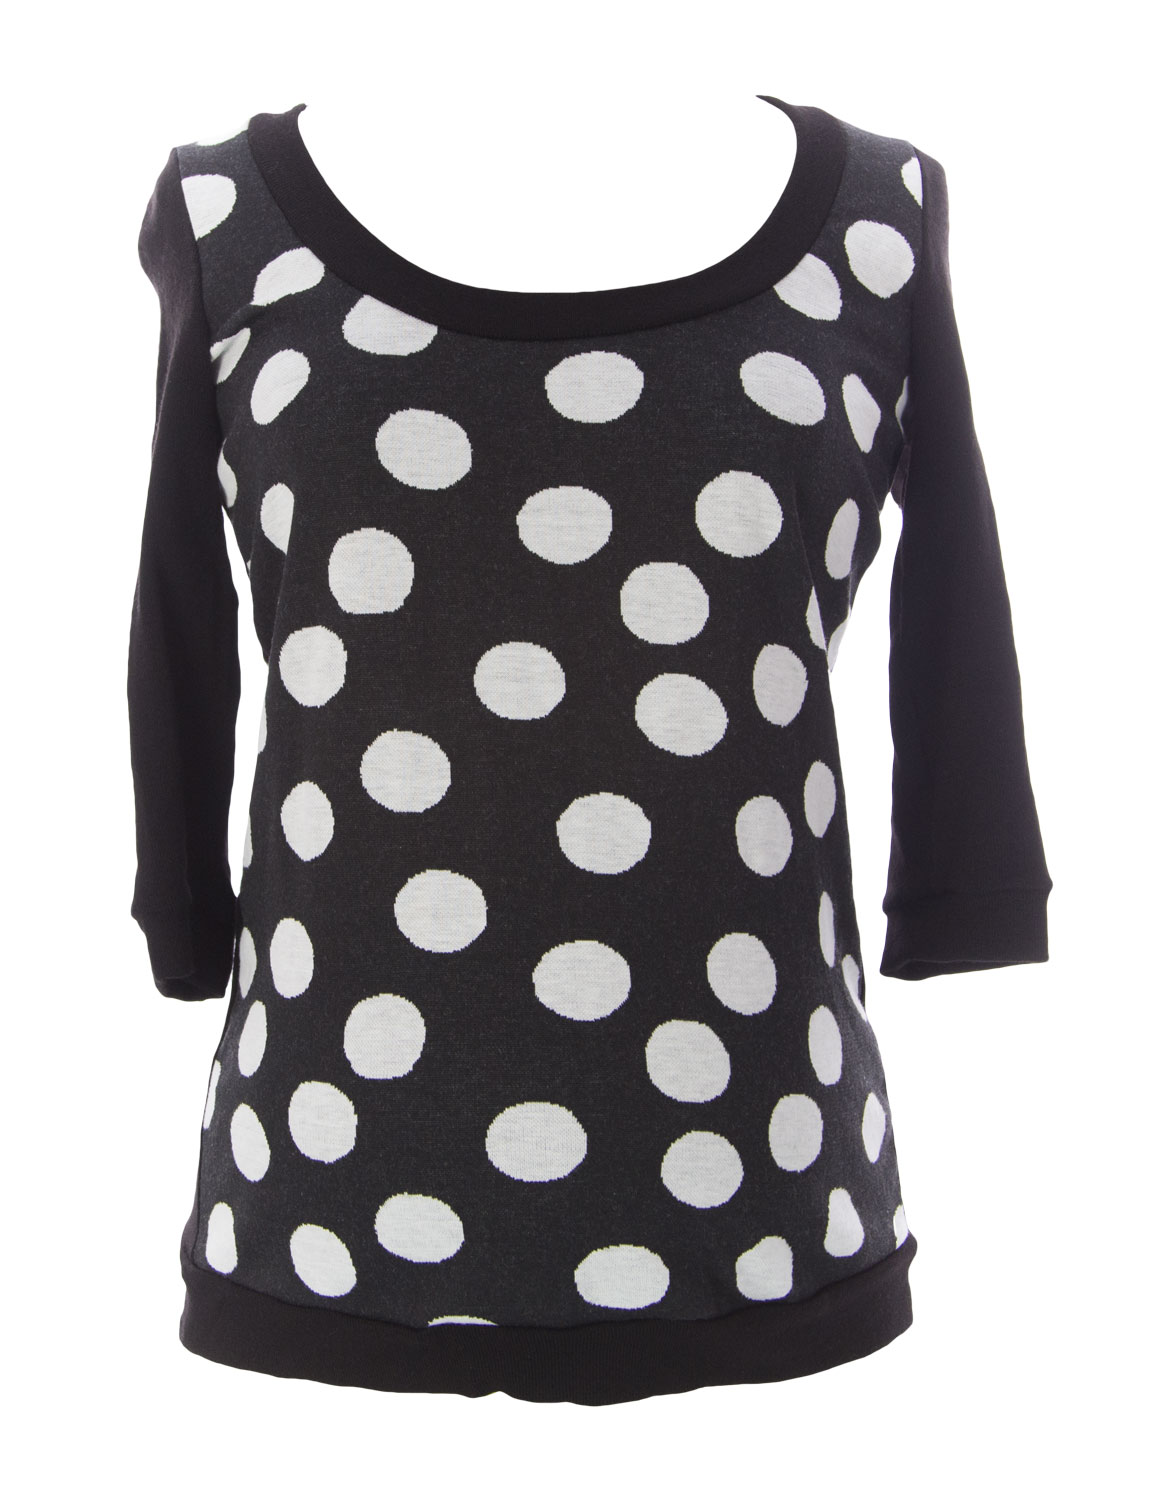 JULES & JIM Maternity Women's Polka Dot Sweater, Medium, Black/White